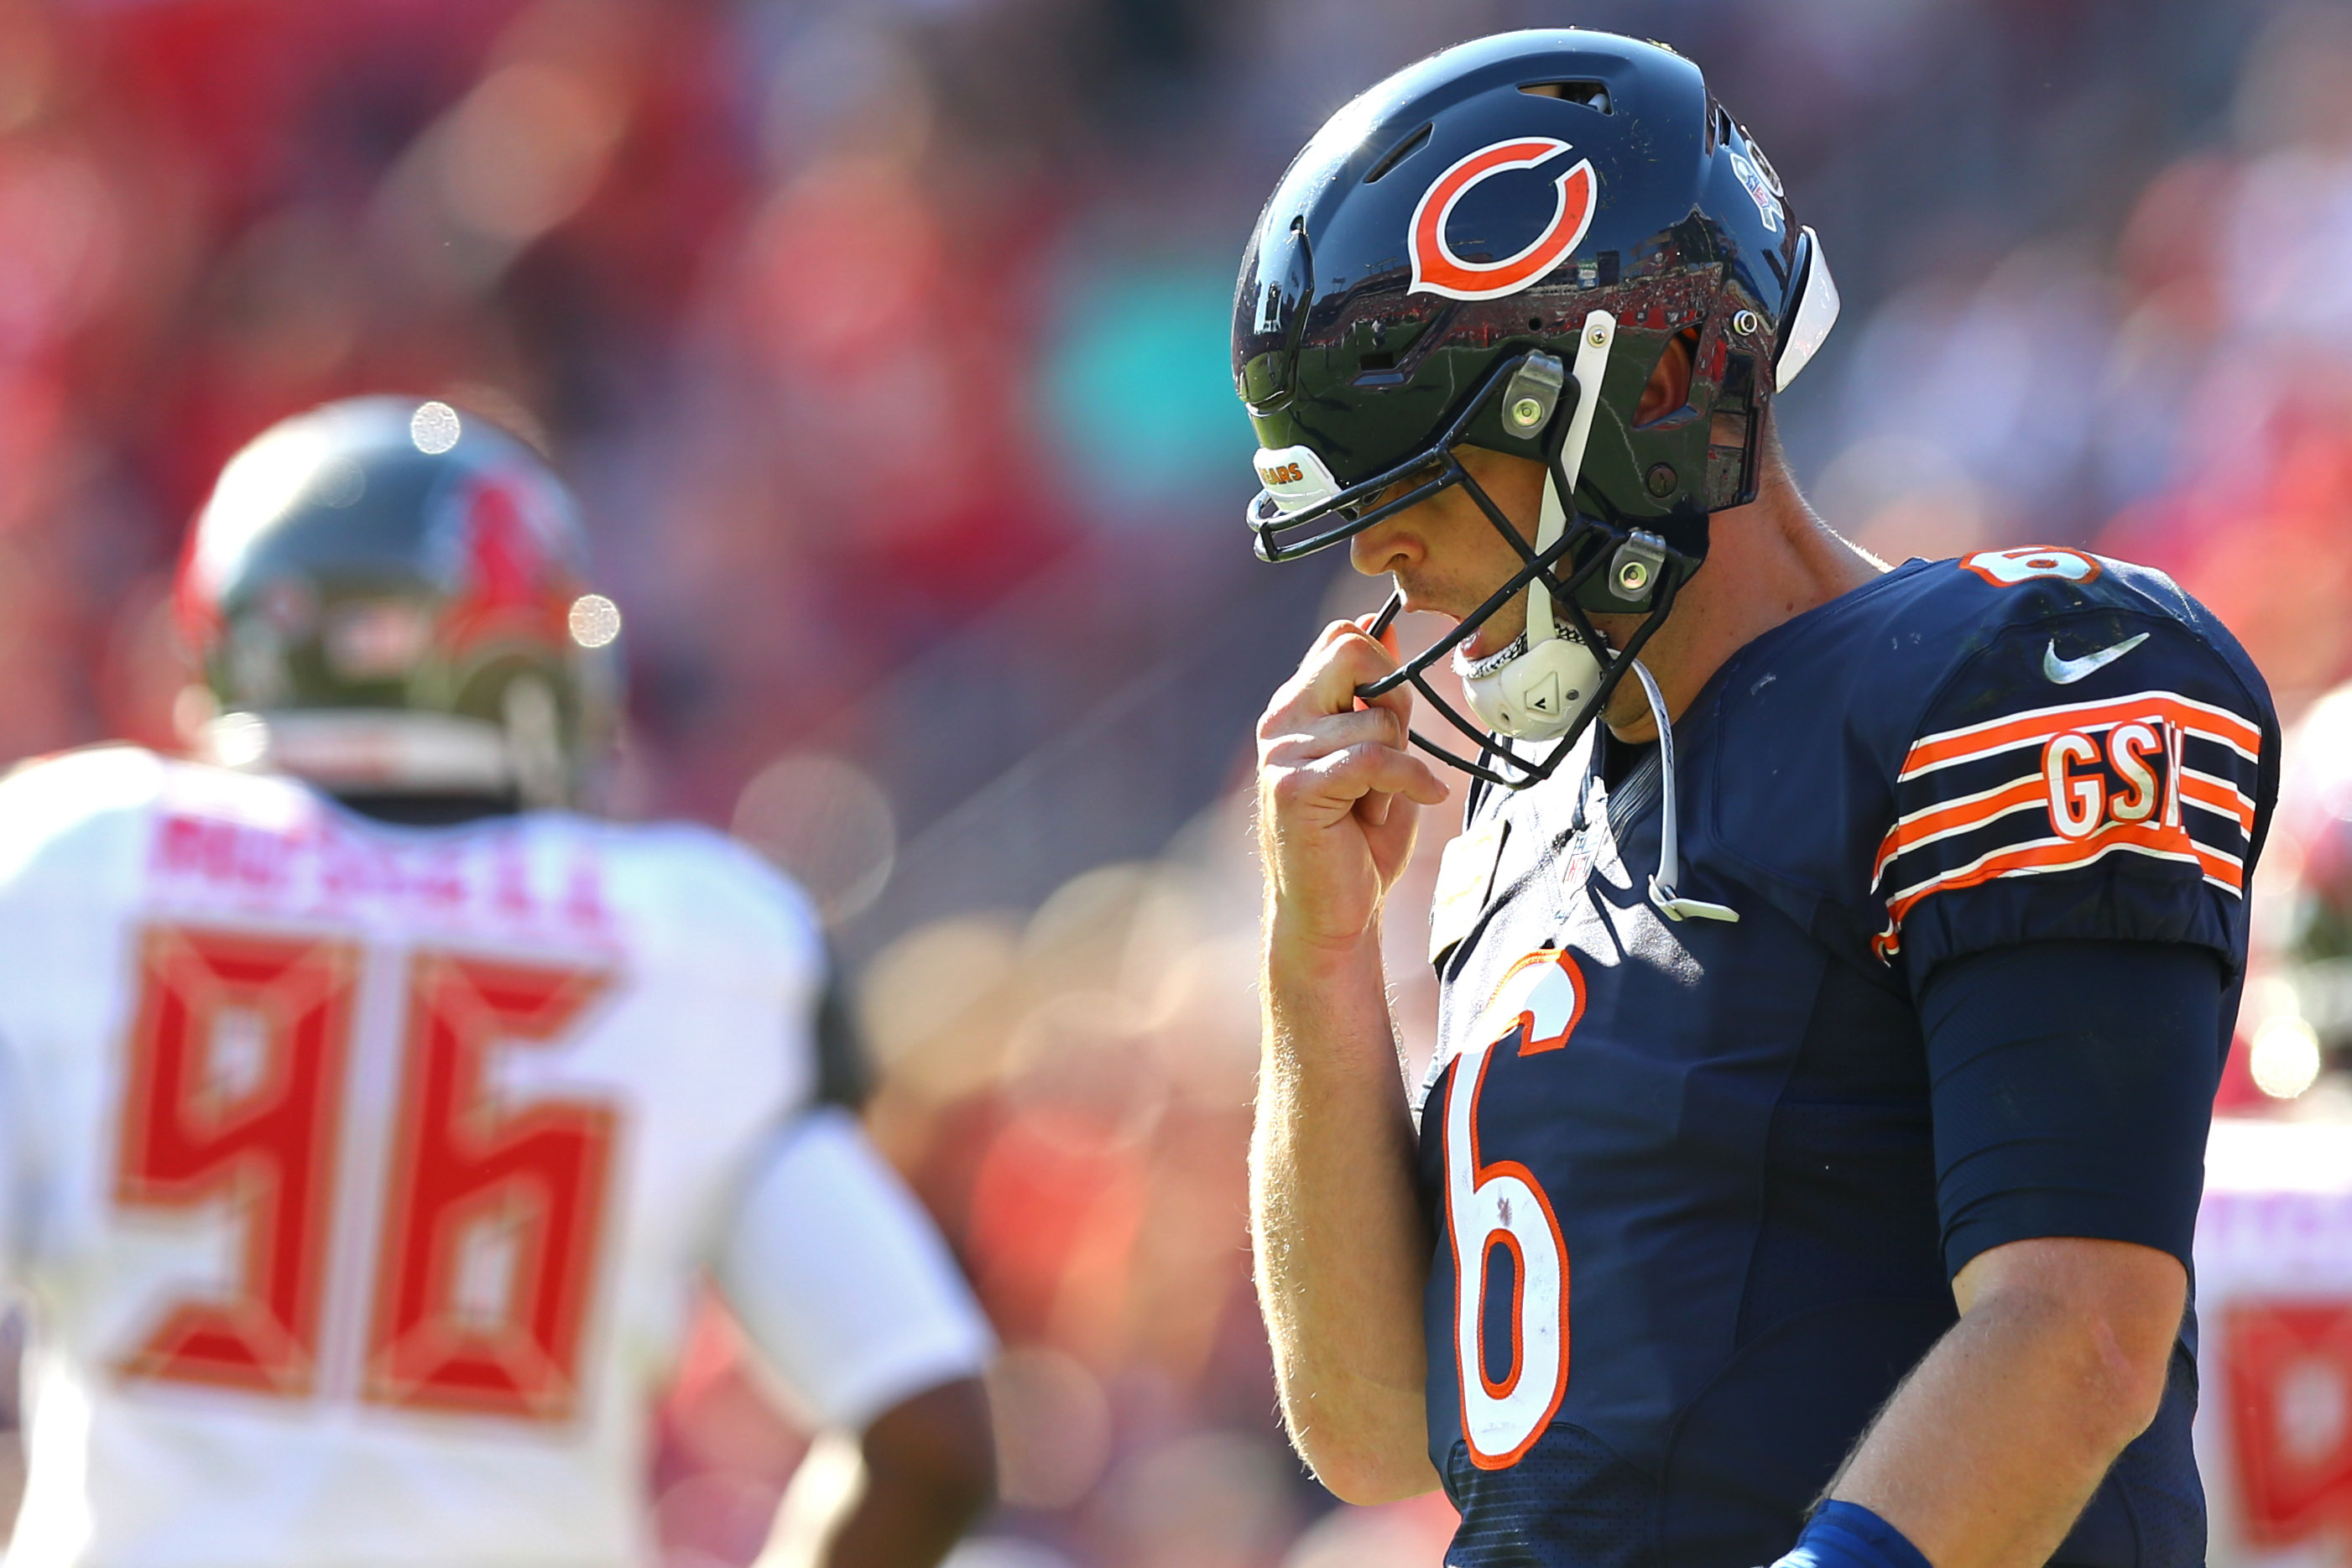 9683316-nfl-chicago-bears-at-tampa-bay-buccaneers